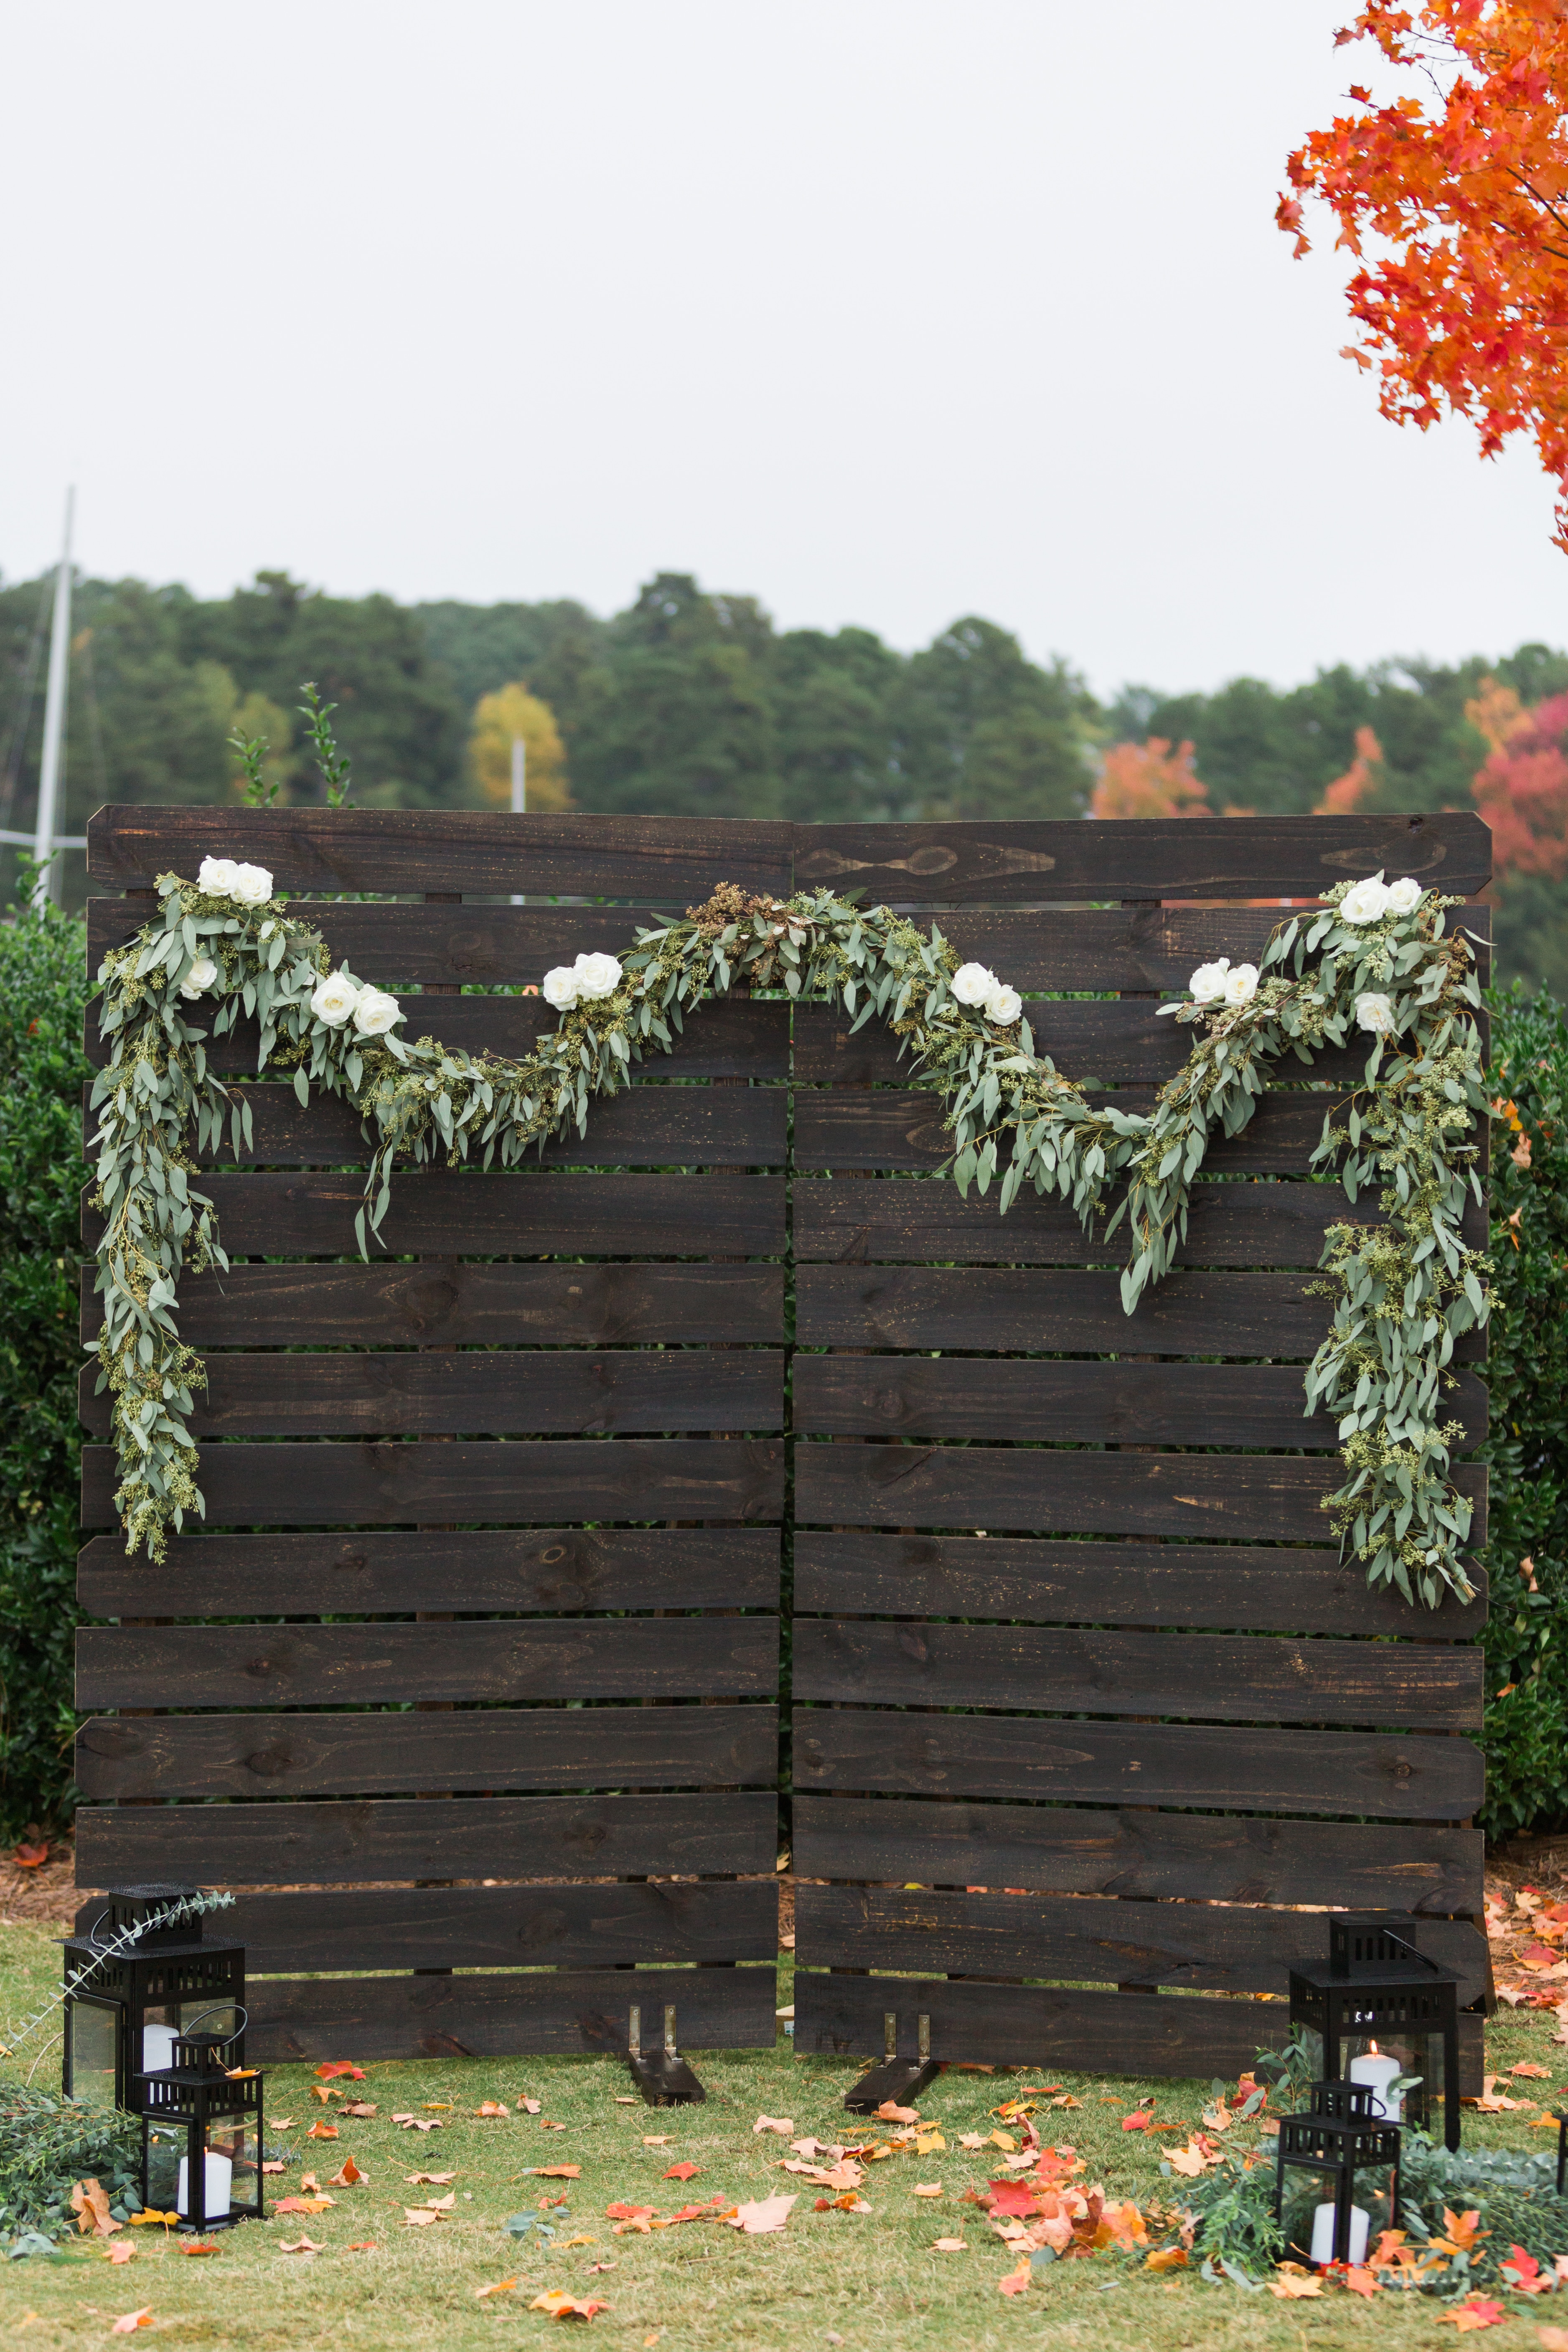 Wedding alter of wooden palettes draped with greenery and florals designed by Magnificent Moments Weddings for an outdoor fall wedding in Charlotte North Carolina